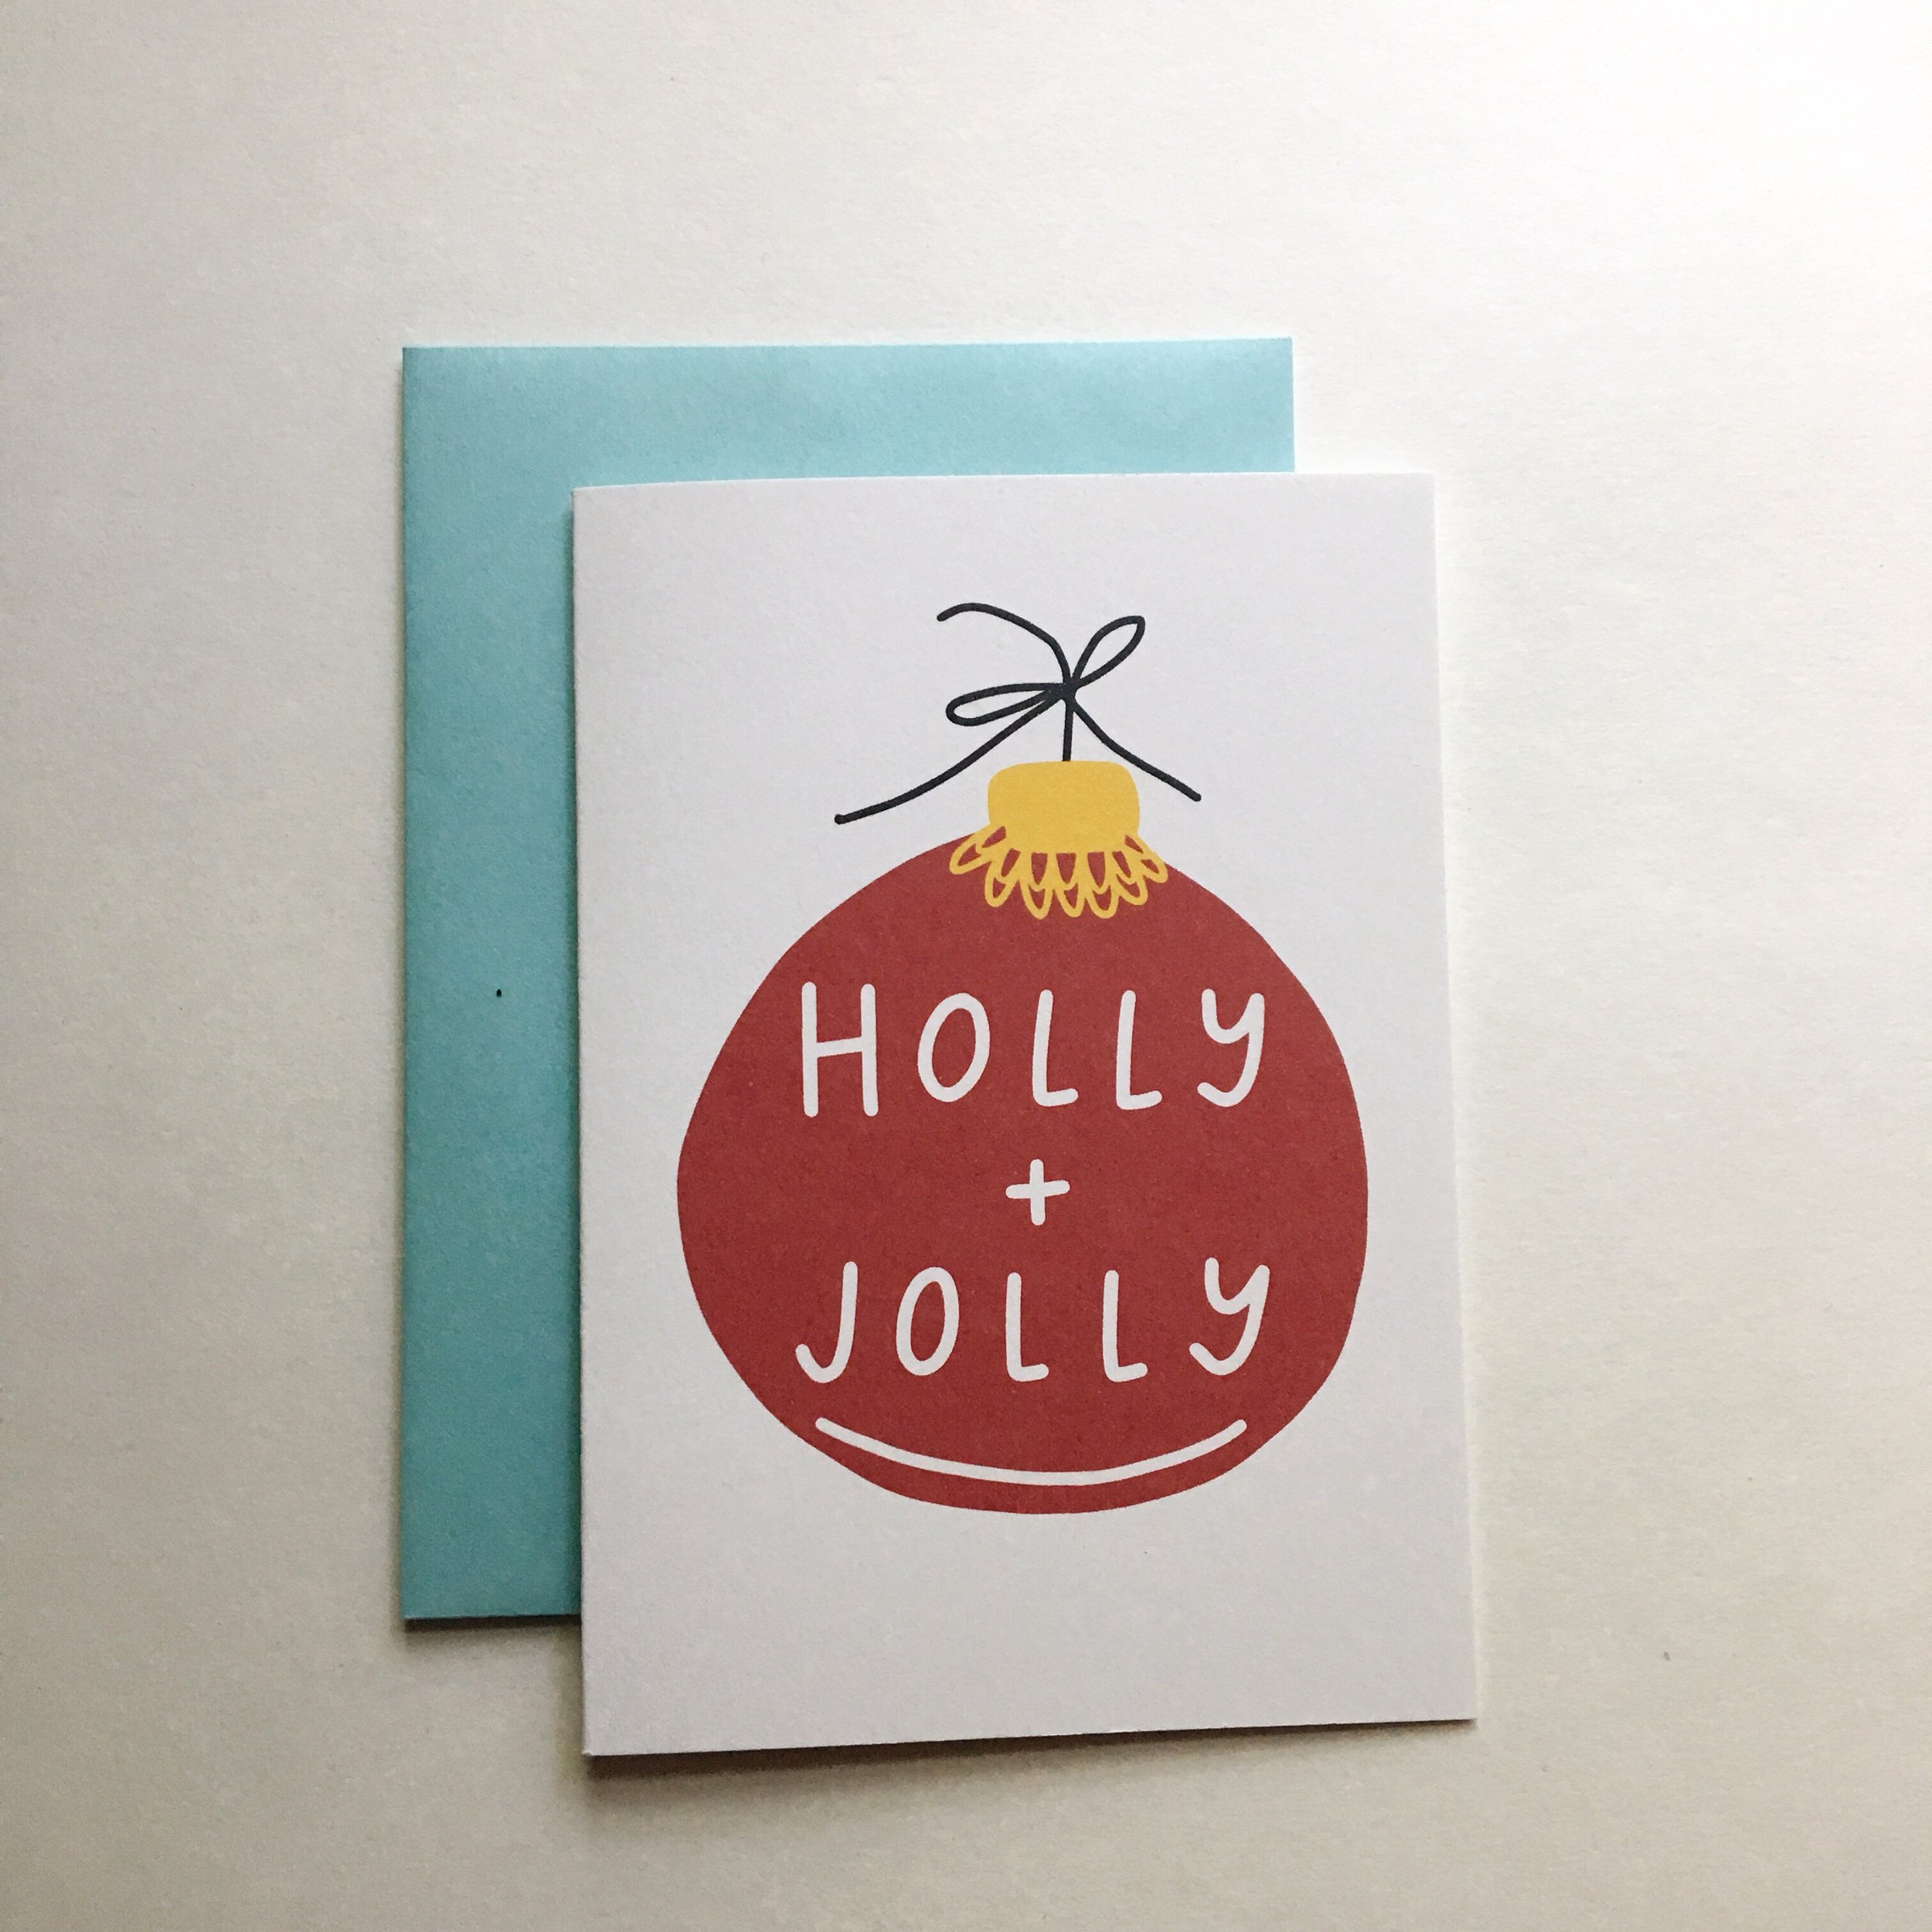 HL002 holly + jolly new* box set of 6 available